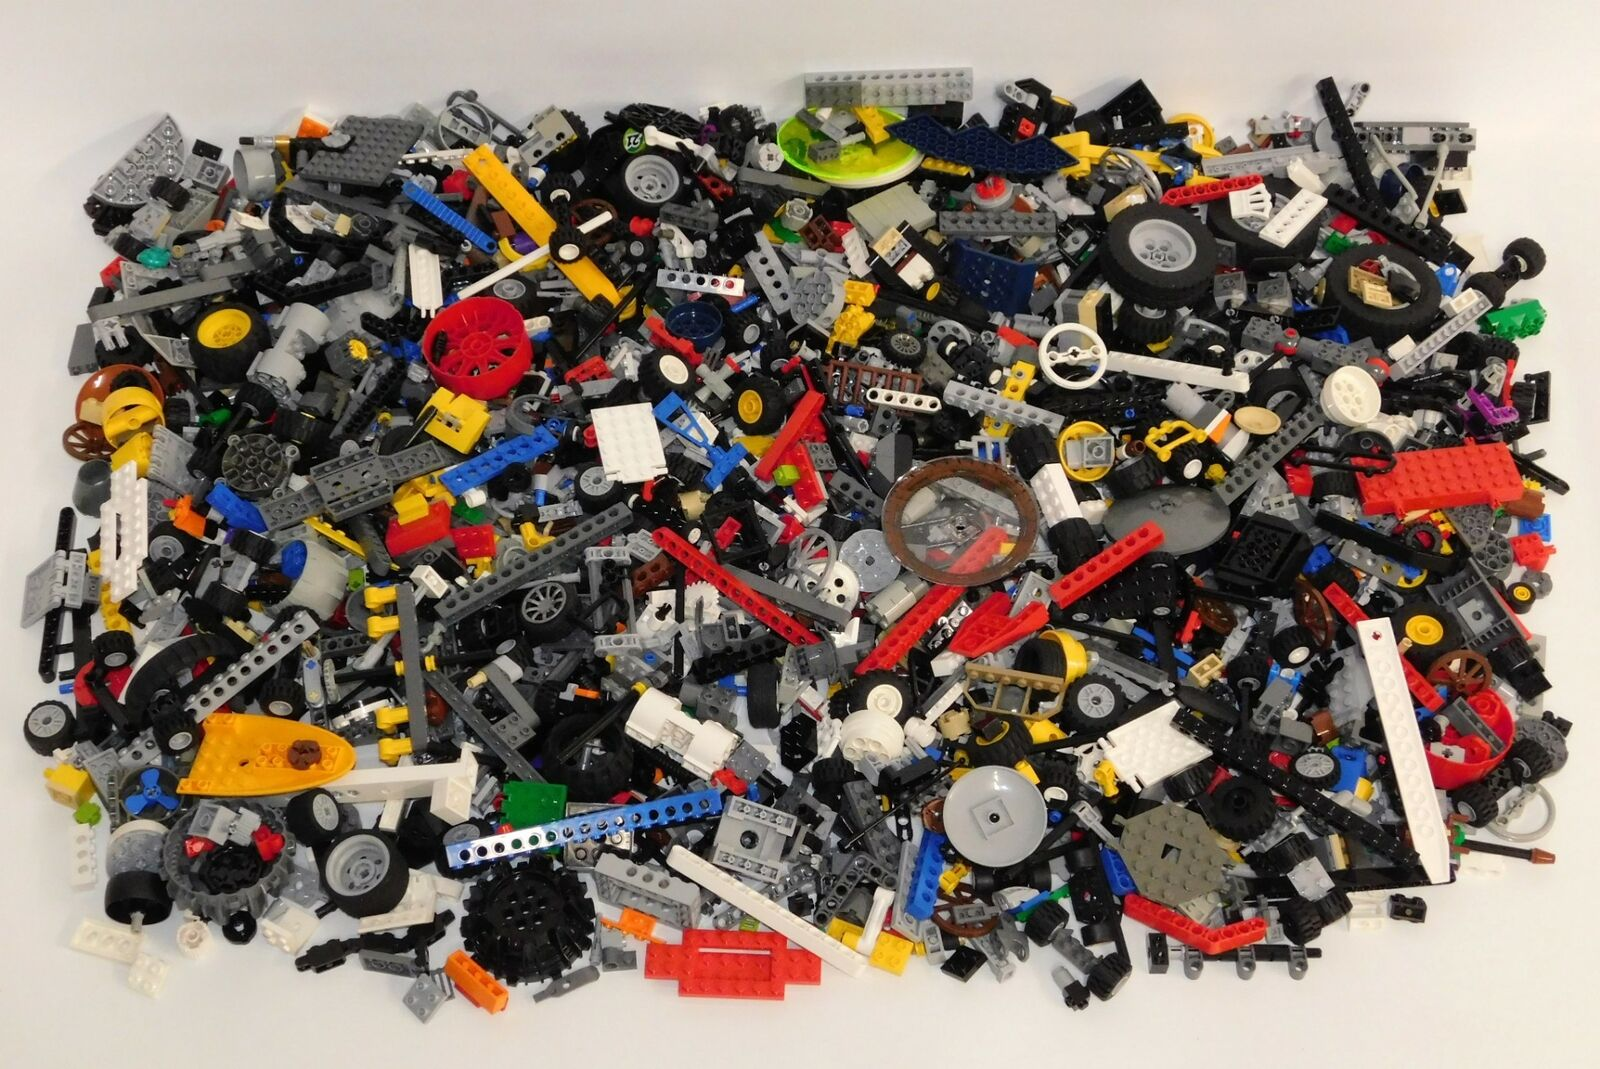 Bulk Lot 7+ Pounds LEGO Technic Assorted Parts, Wheels, Rods, Connectors, More A